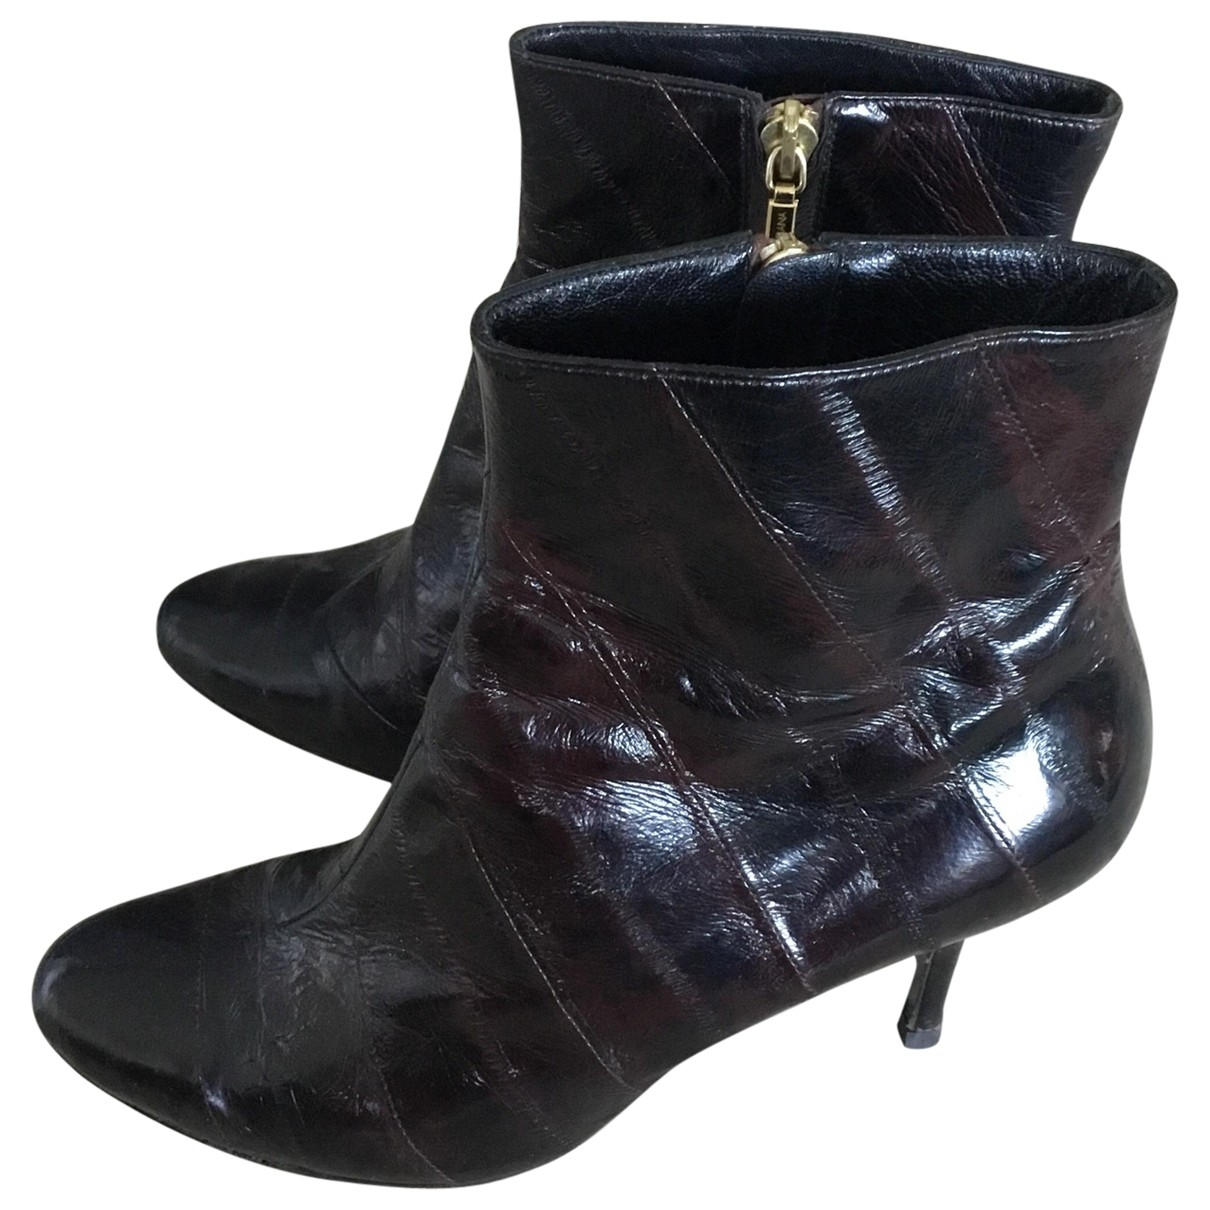 Dolce & Gabbana \N Burgundy Patent leather Ankle boots for Women 39 EU